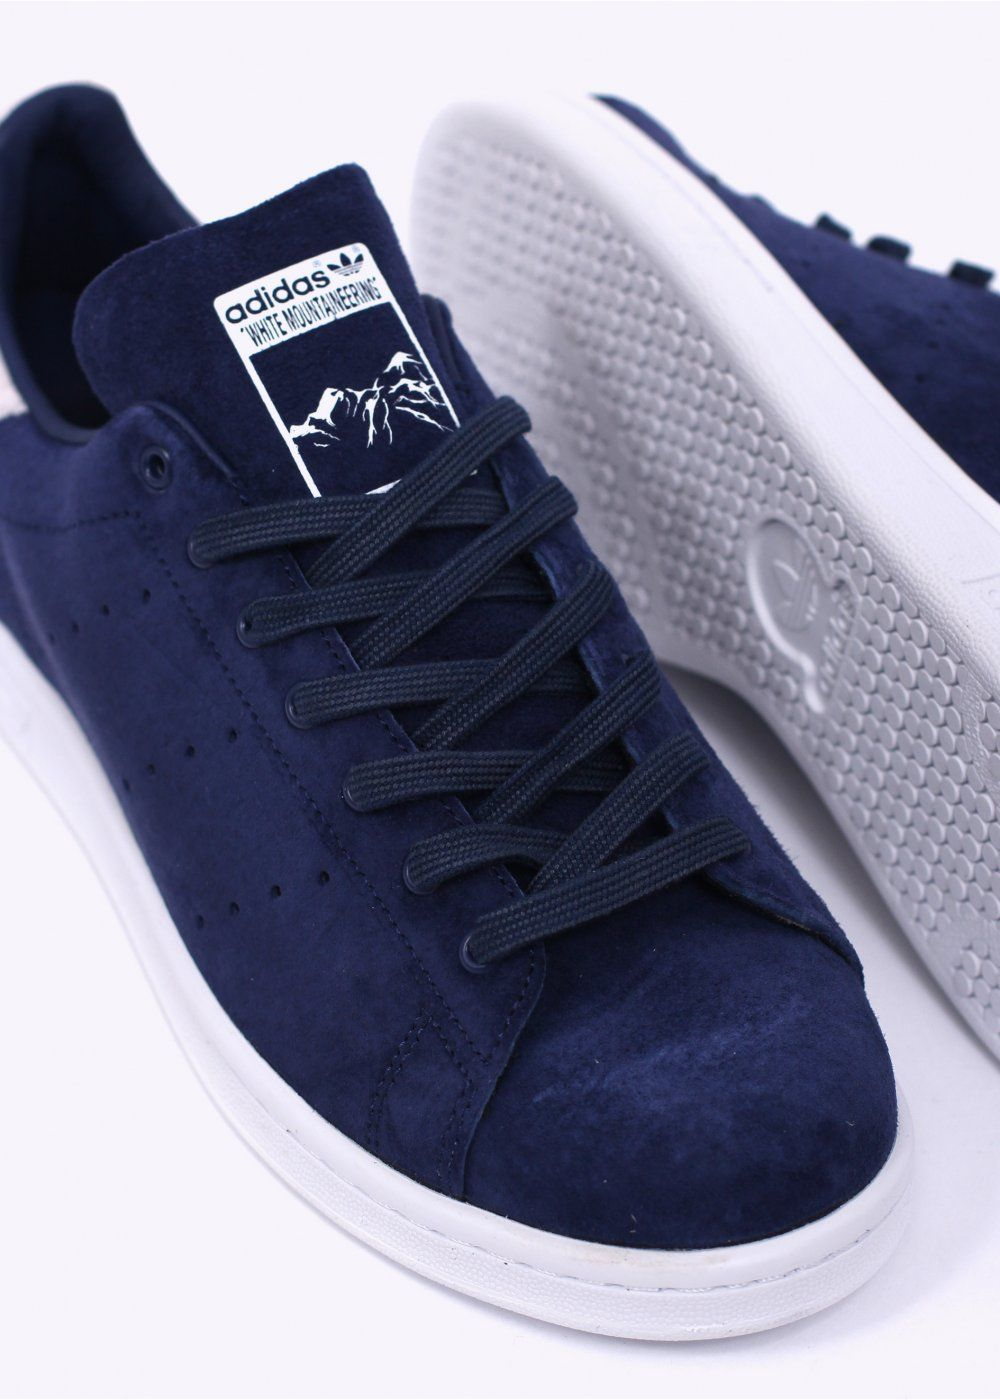 UK Shoes Store - Comfortable x Adidas Originals Stan Smith White Mountaineering Blue Men Dark Blue W